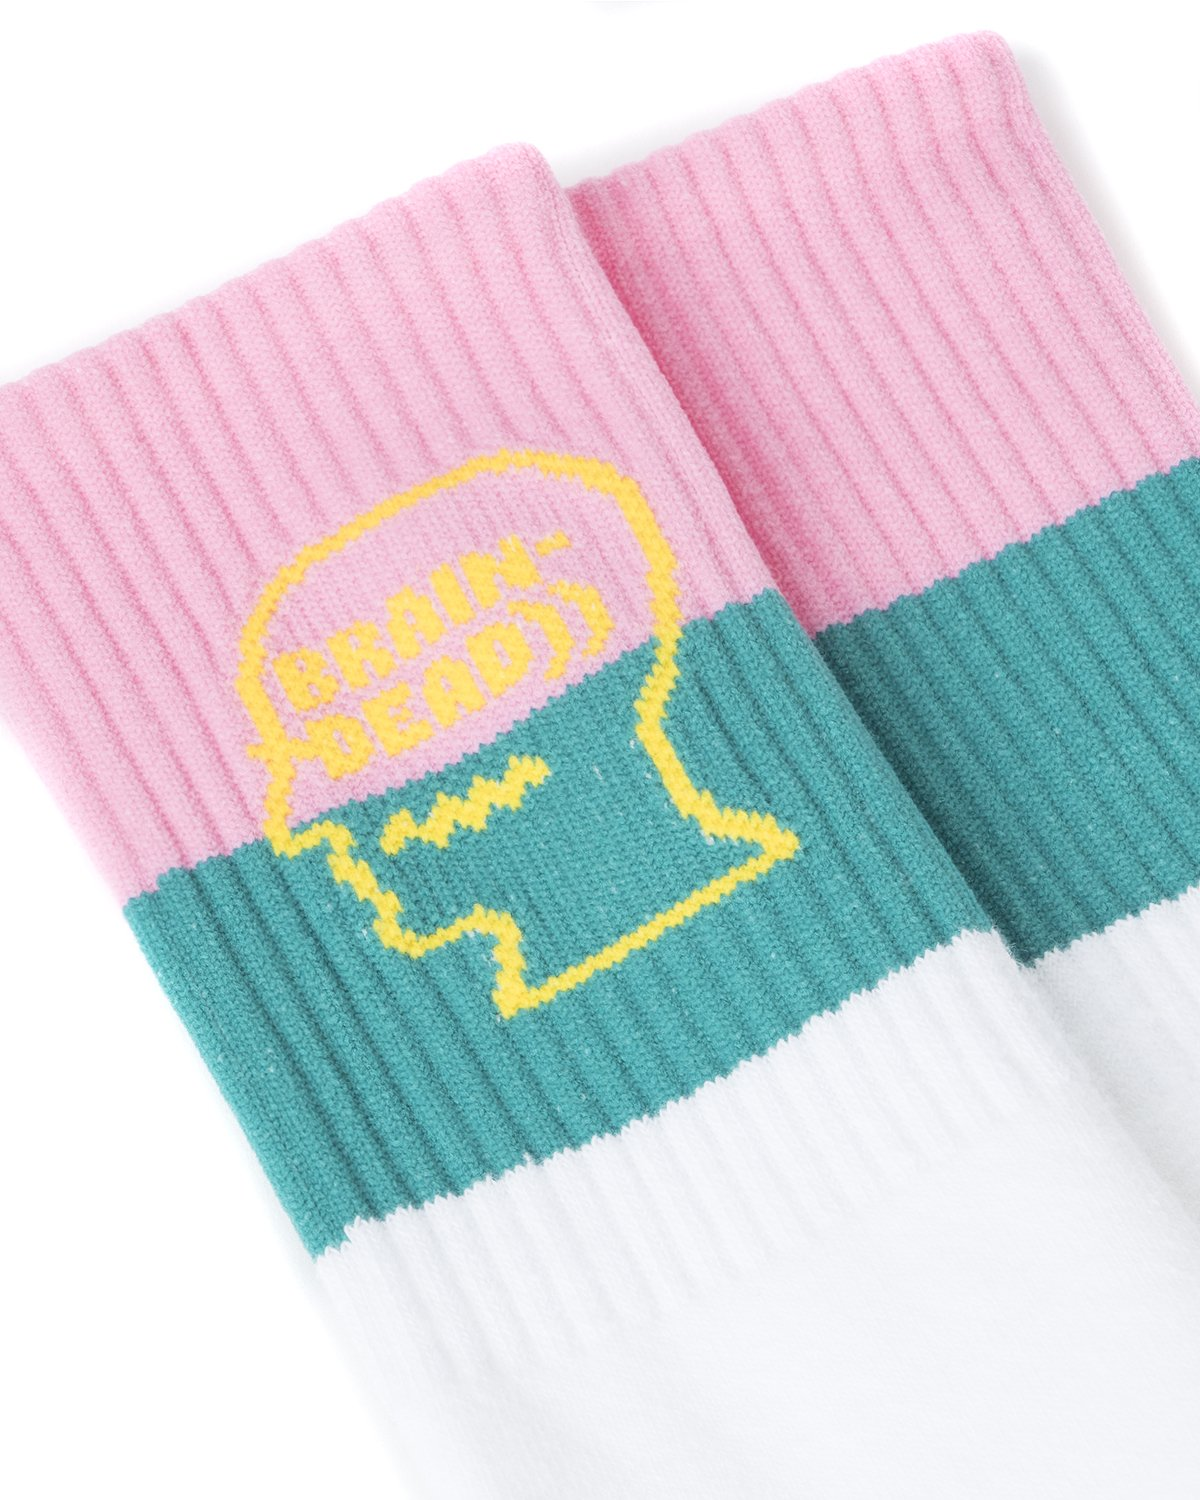 STRIPED LOGO HEAD SOCKS - WHITE/TEAL/PINK